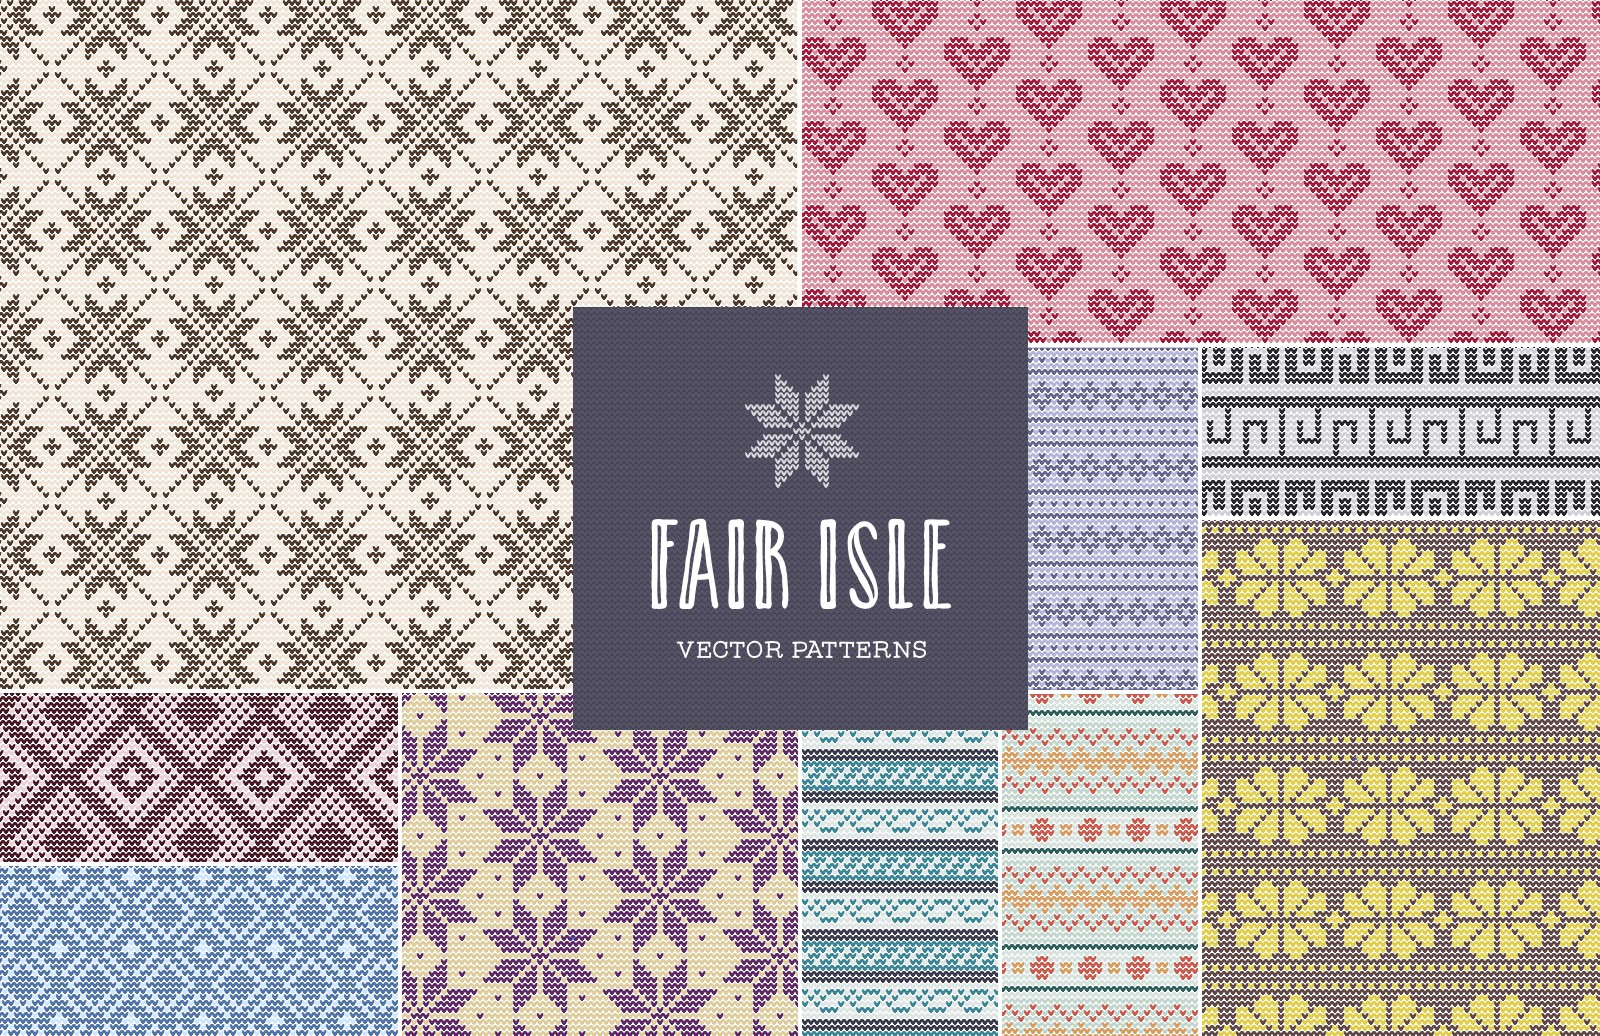 Seamless Fair Isle Vector Patterns